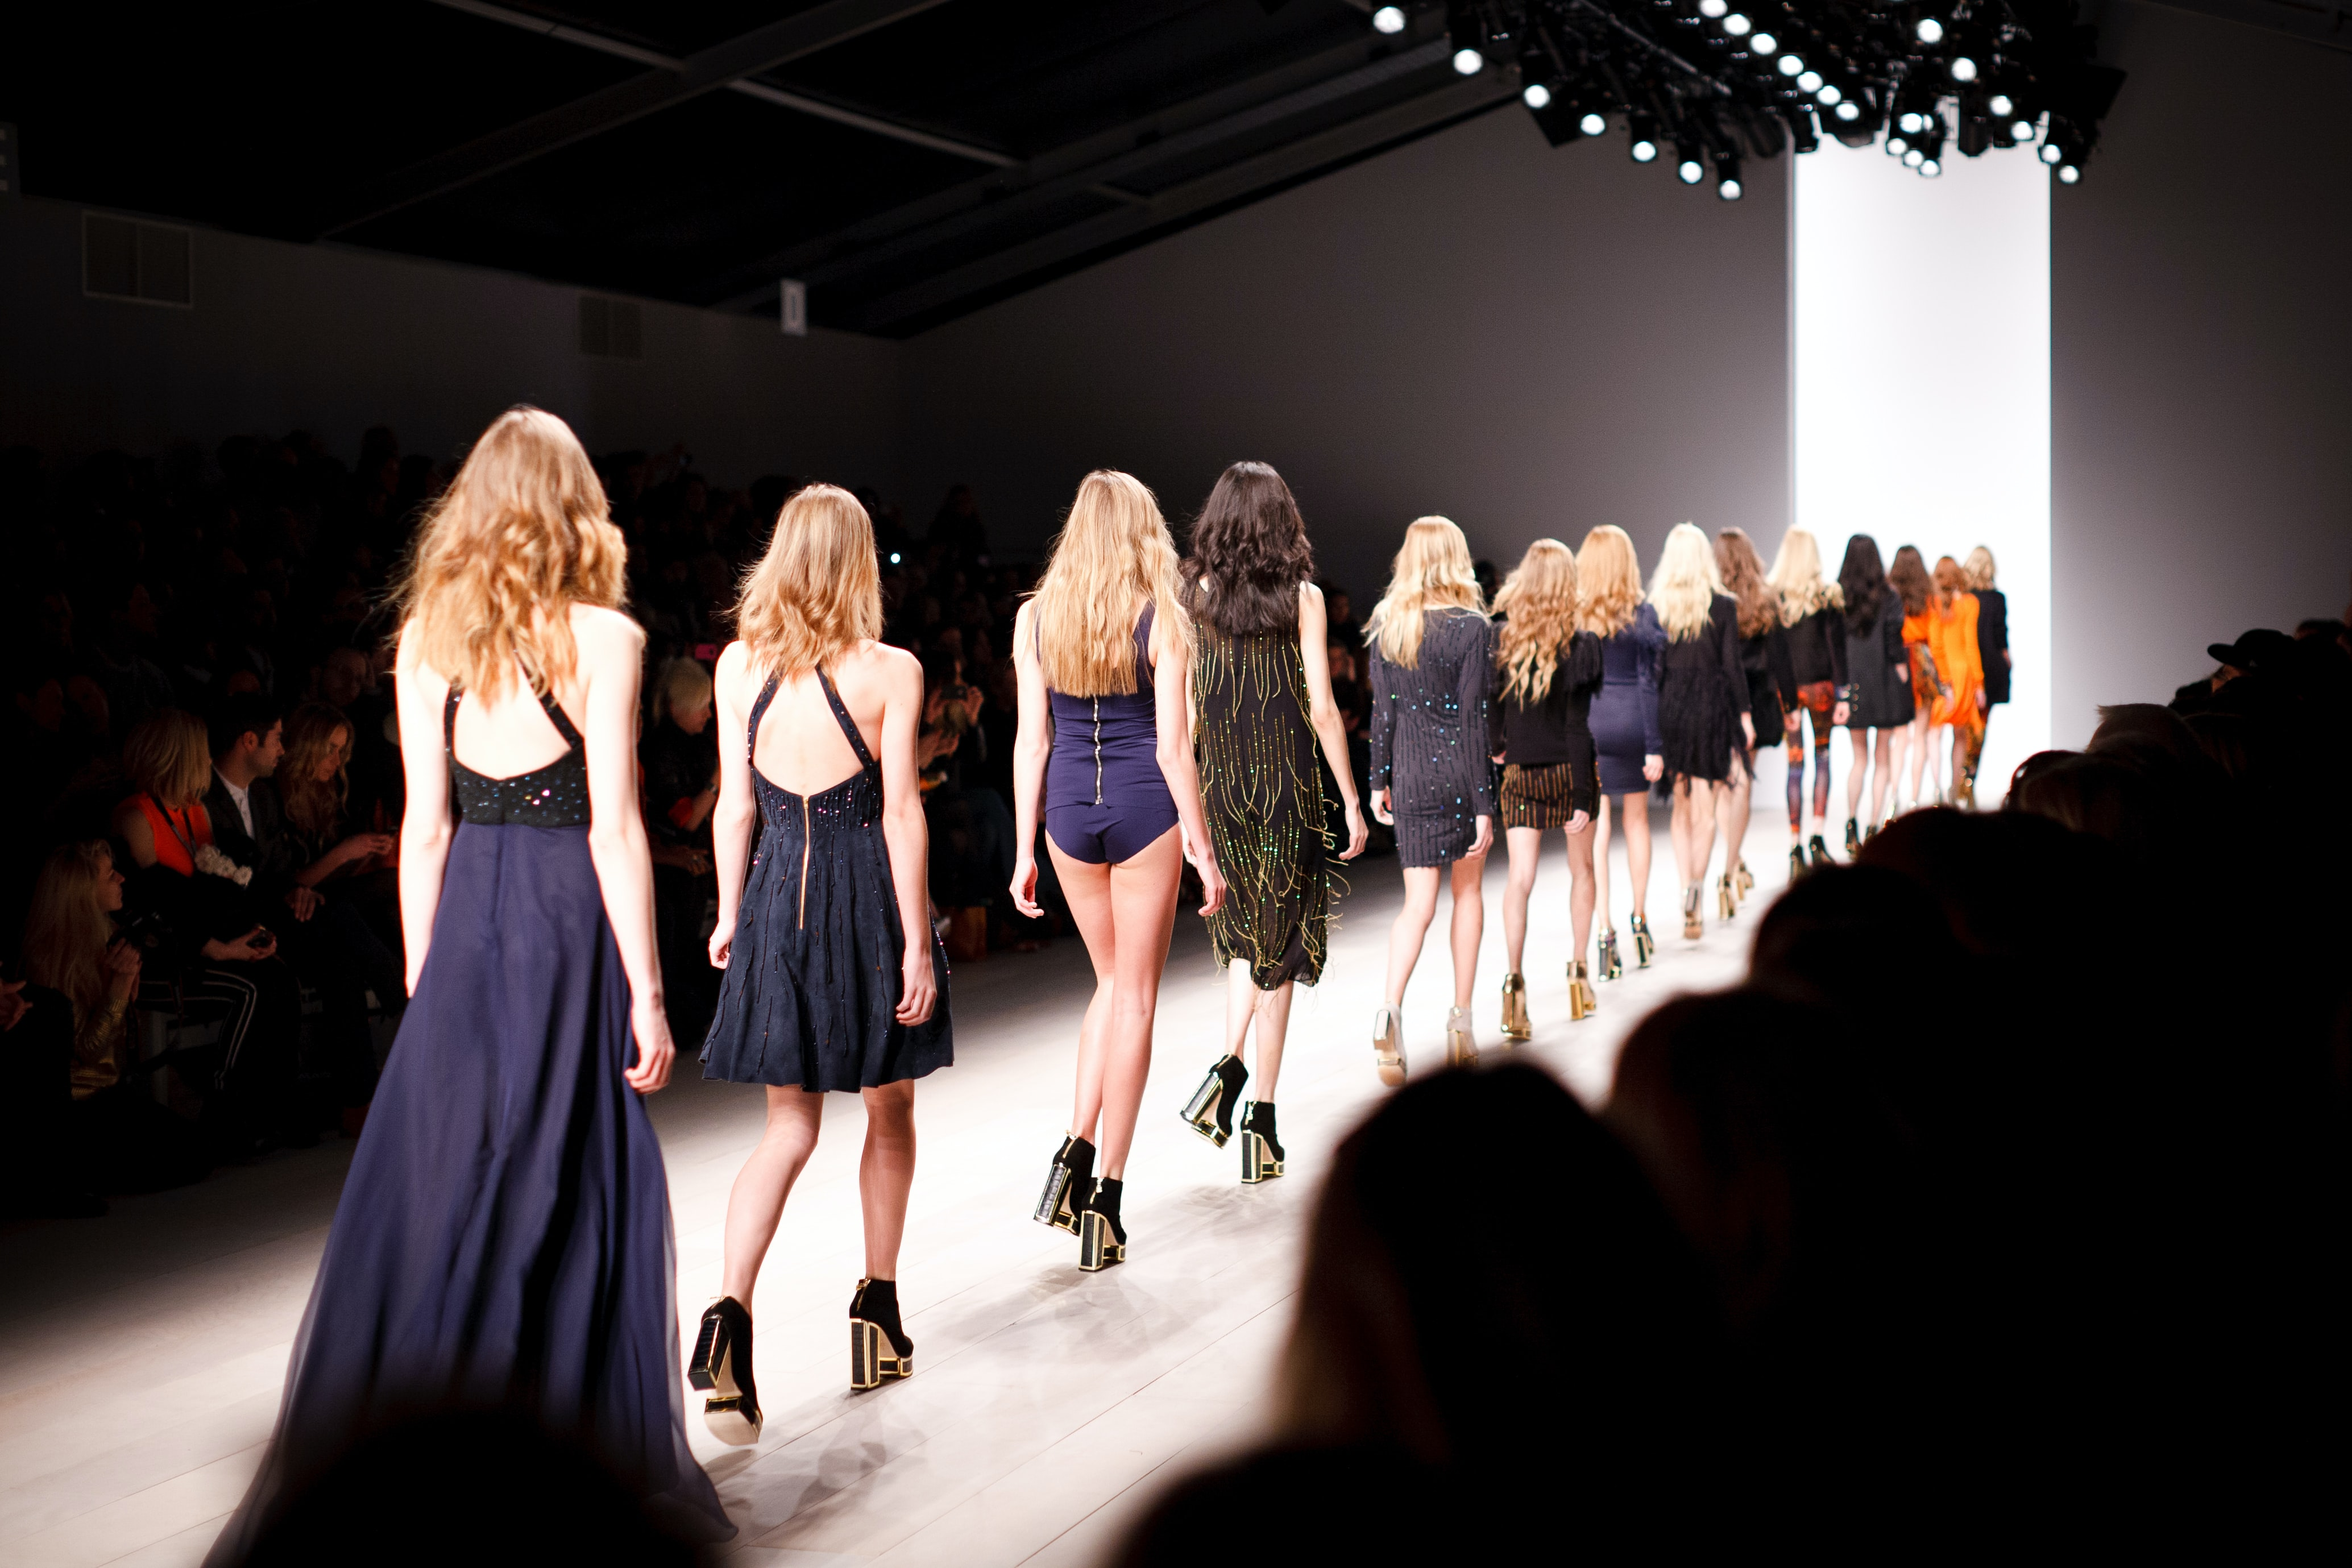 A long line of female models on the catwalk